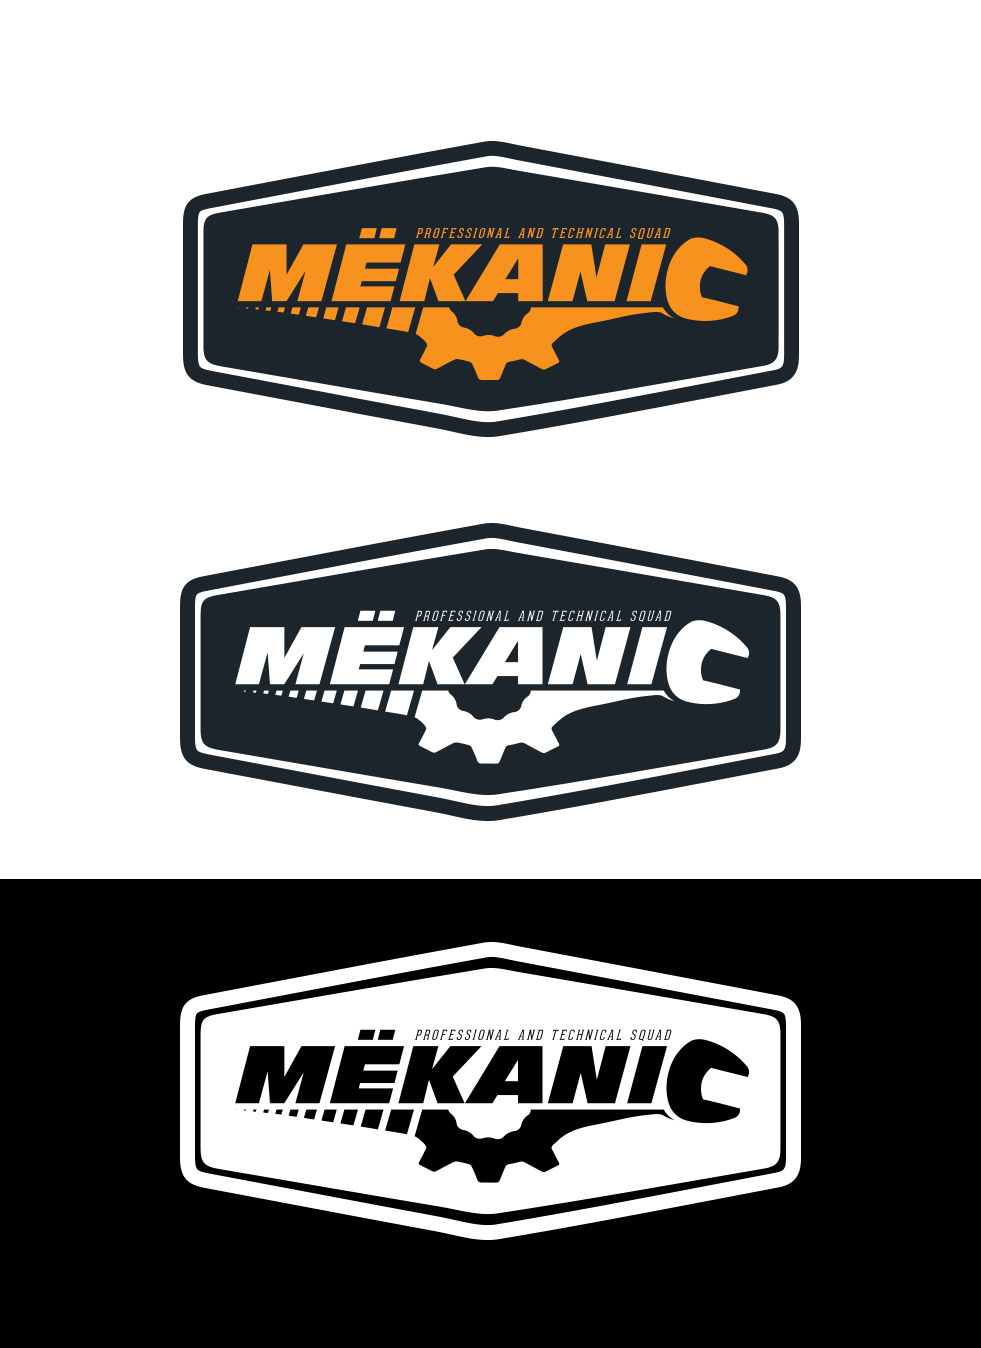 Logo Design by olii - Entry No. 249 in the Logo Design Contest Creative Logo Design for MËKANIC - Professional and technical squad.